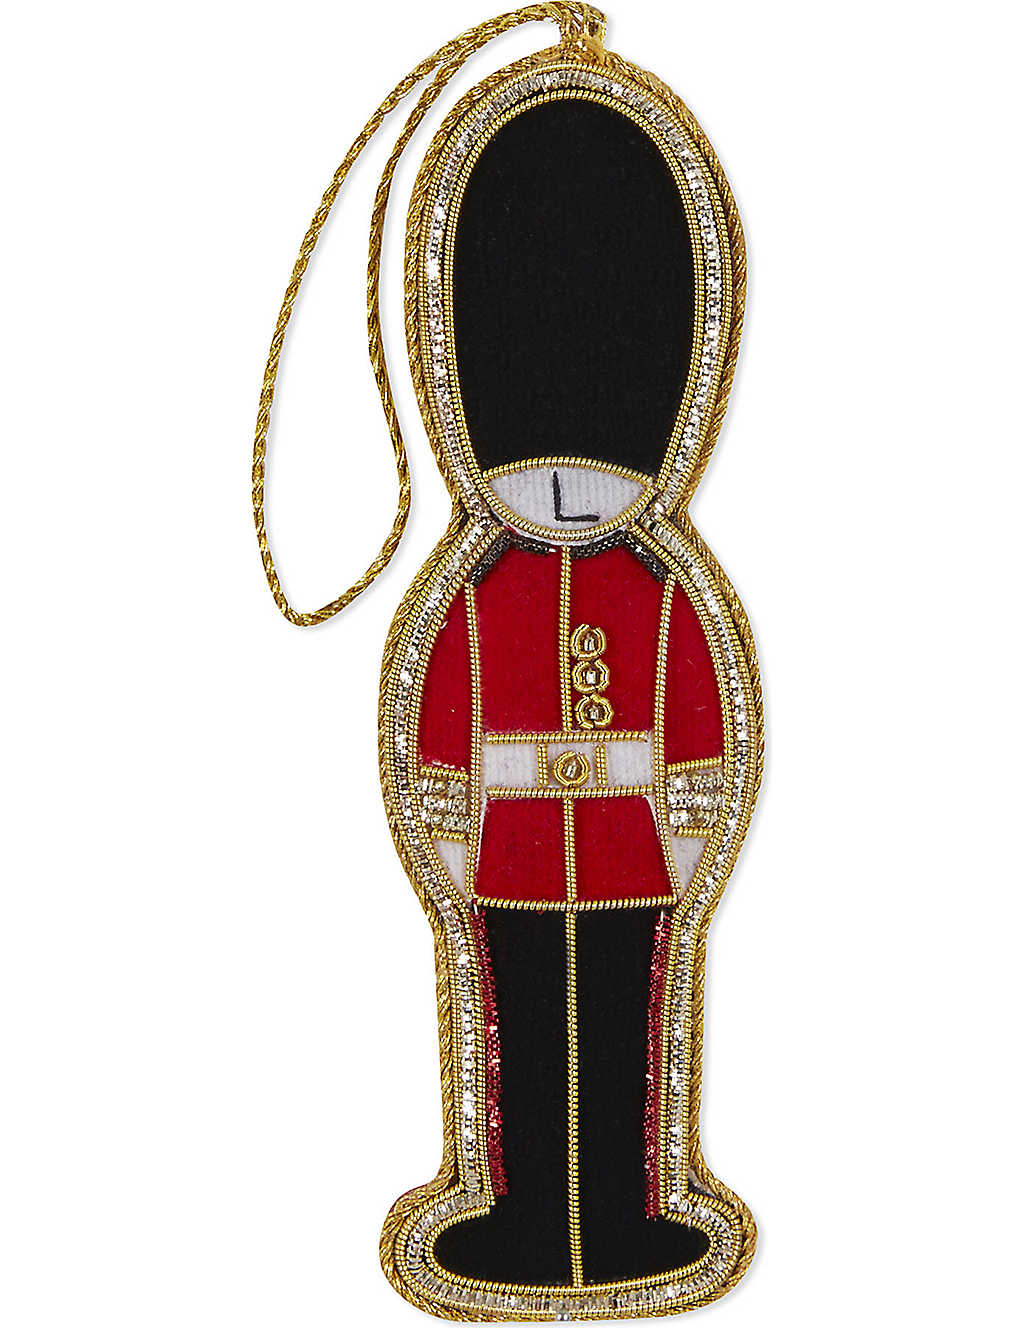 ST NICHOLAS: London gold guardsman